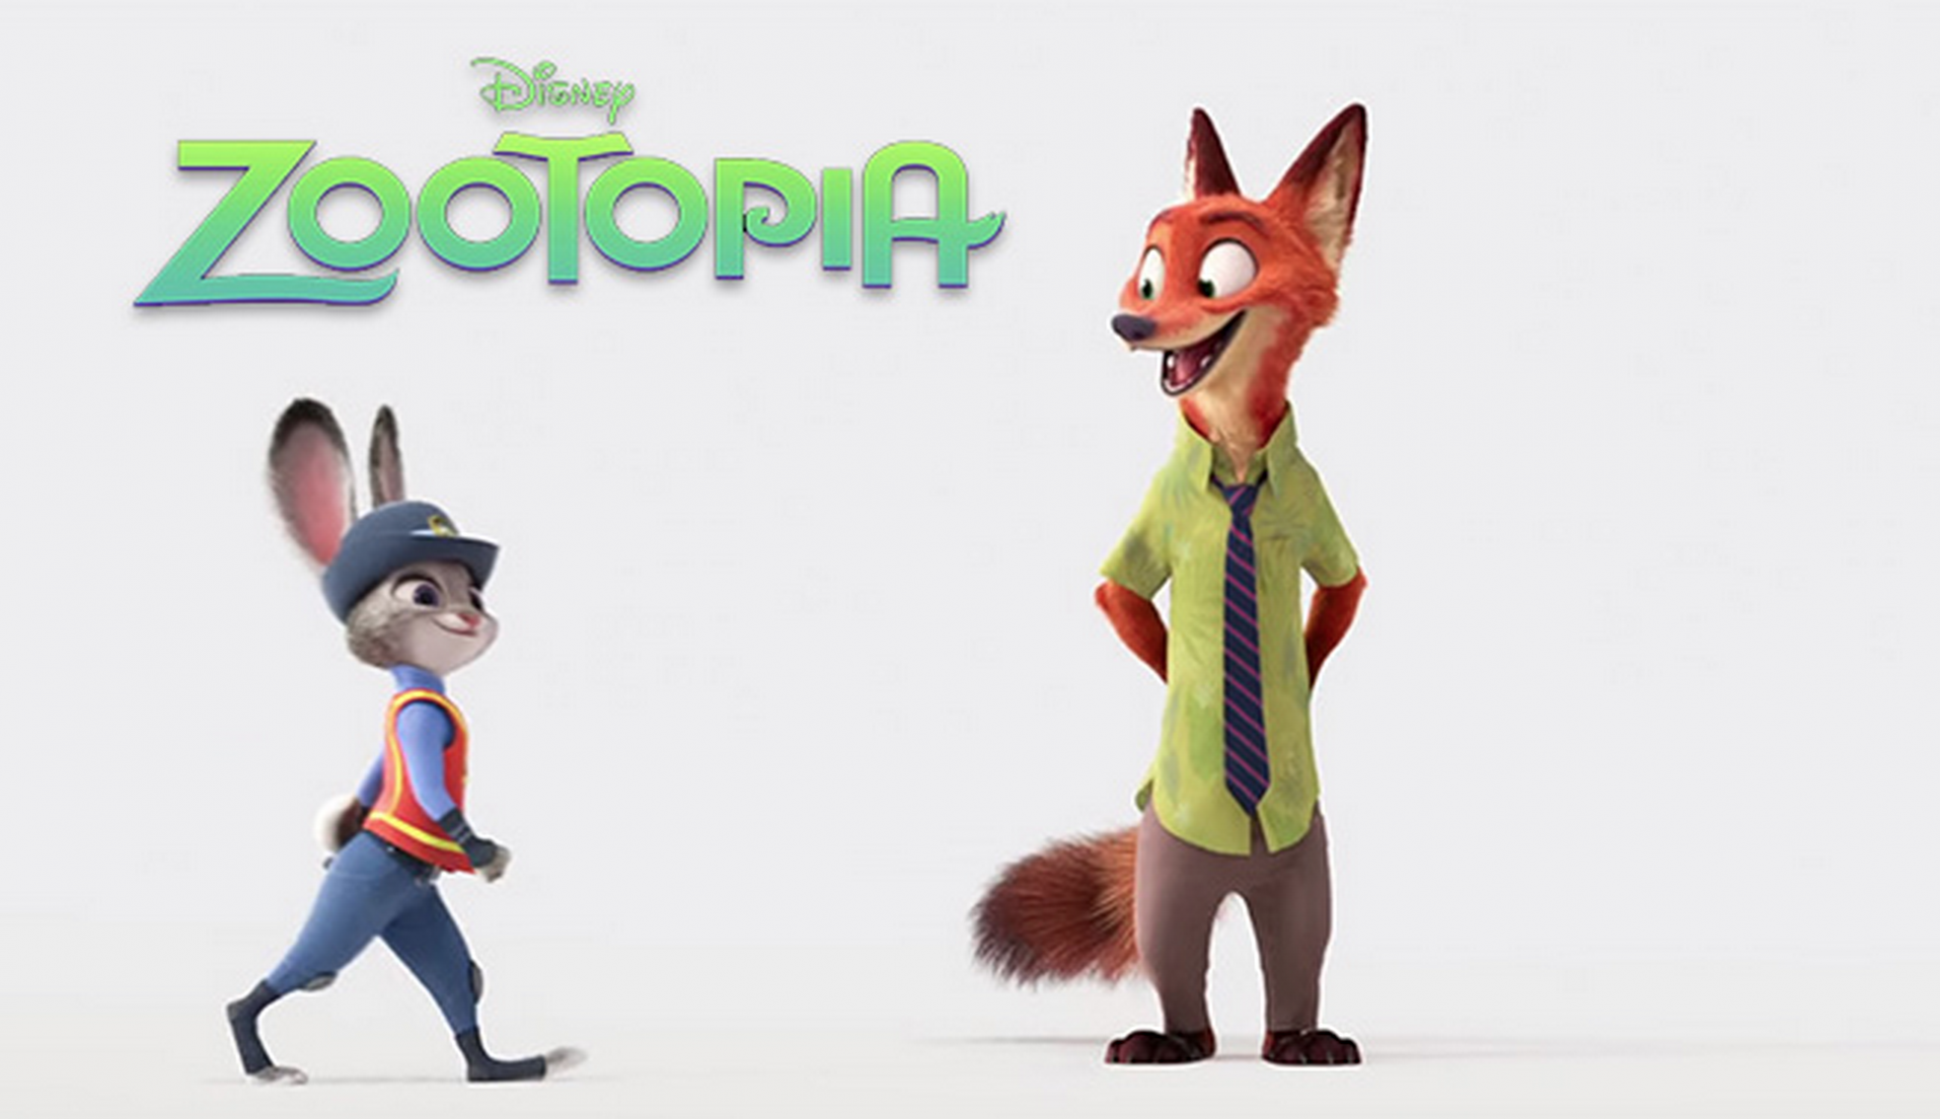 Hollywood Zootopia Movie Sloth Trailer Video Released Today